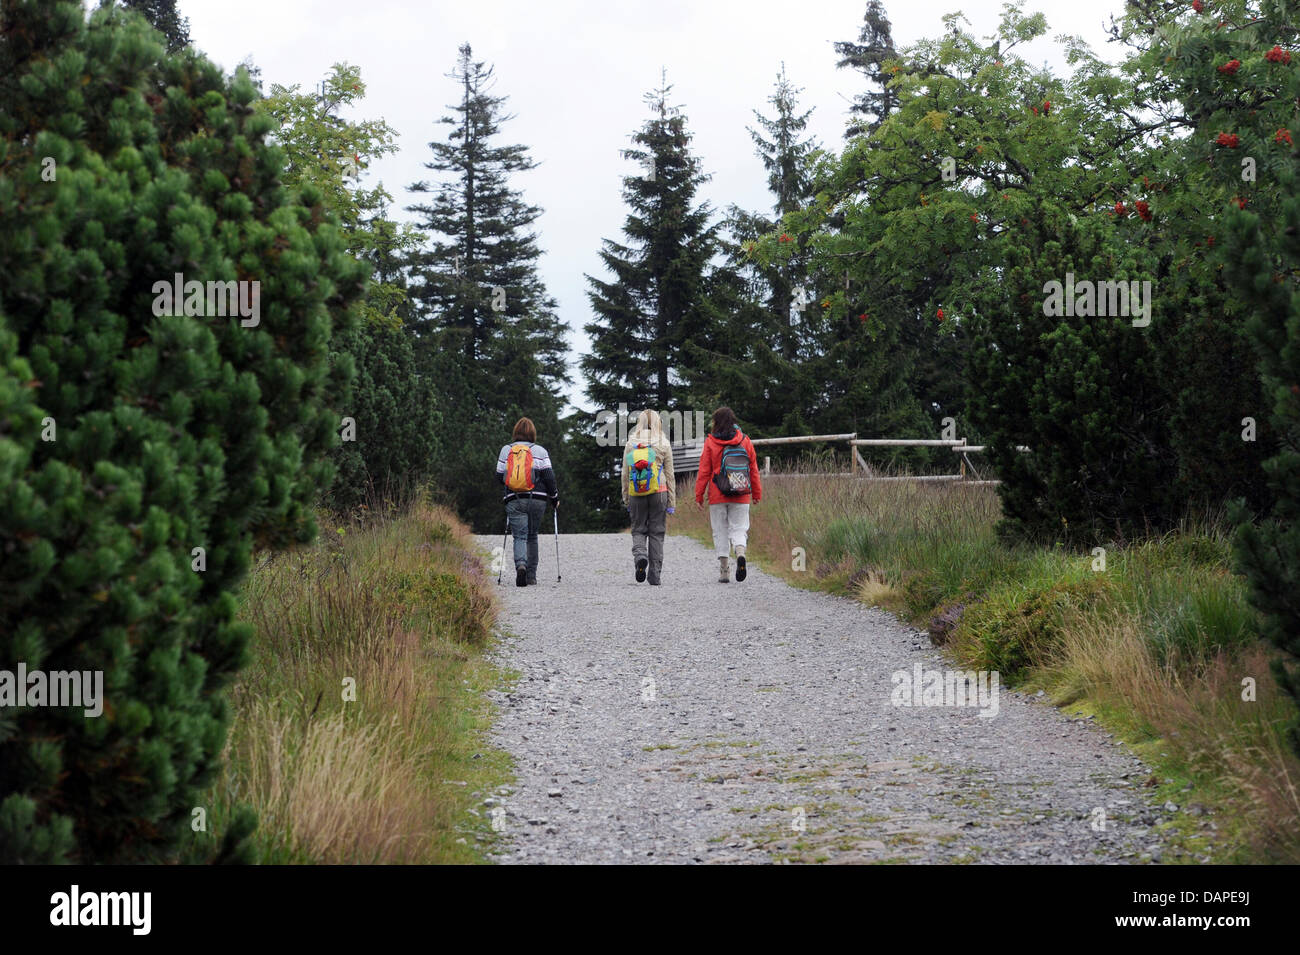 Hikers march along a forest path through the Bannwald in the northern Black Forest region near Seebach, Germany, Stock Photo